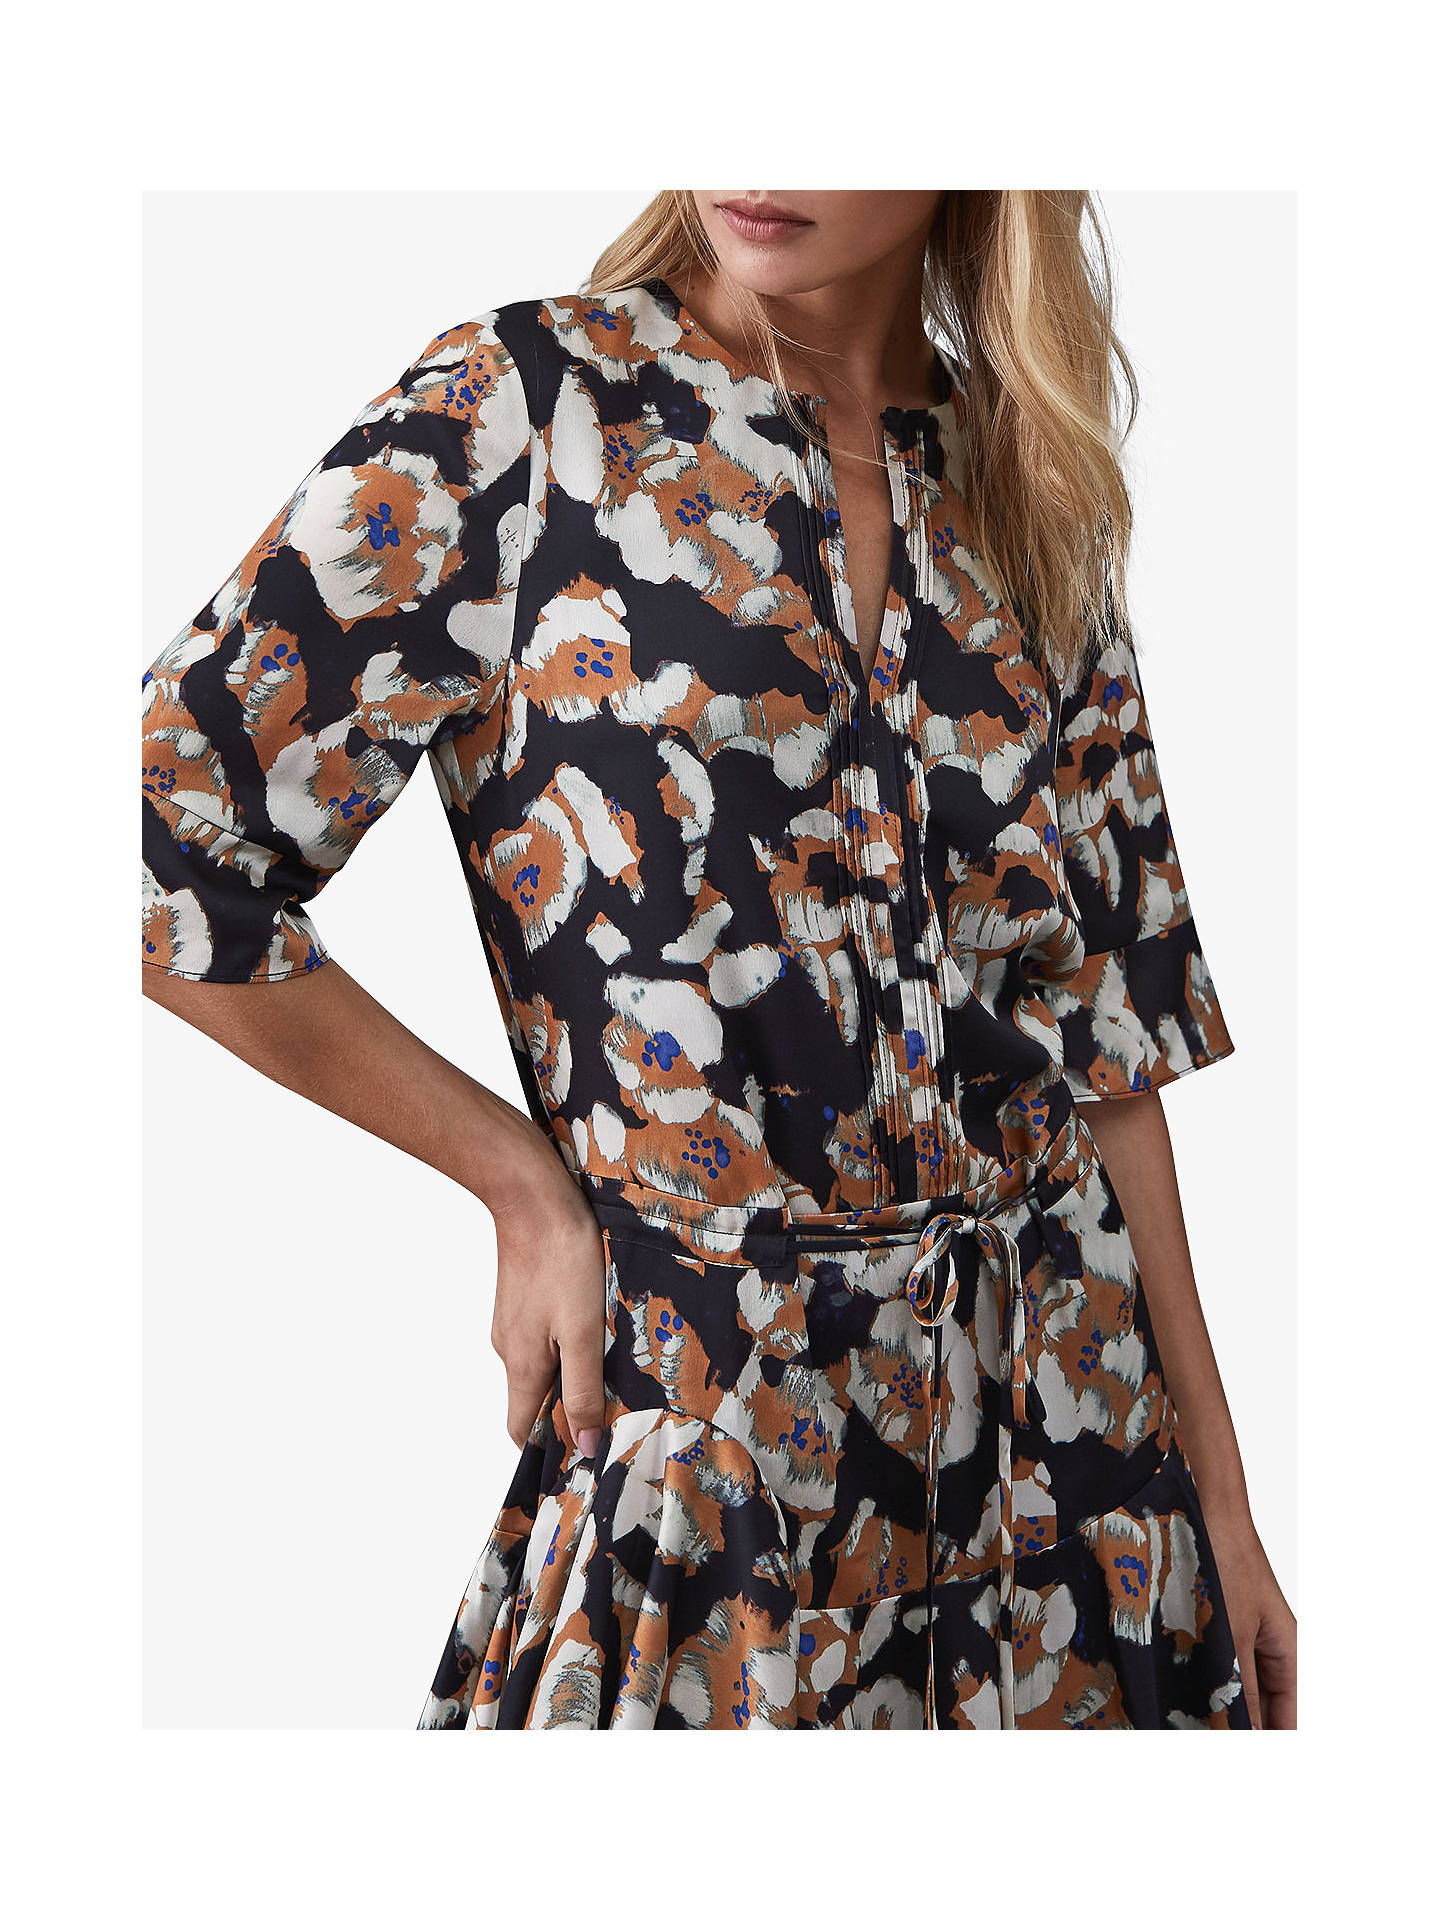 BuyReiss Kianni Floral Day Dress, Multi, 14 Online at johnlewis.com